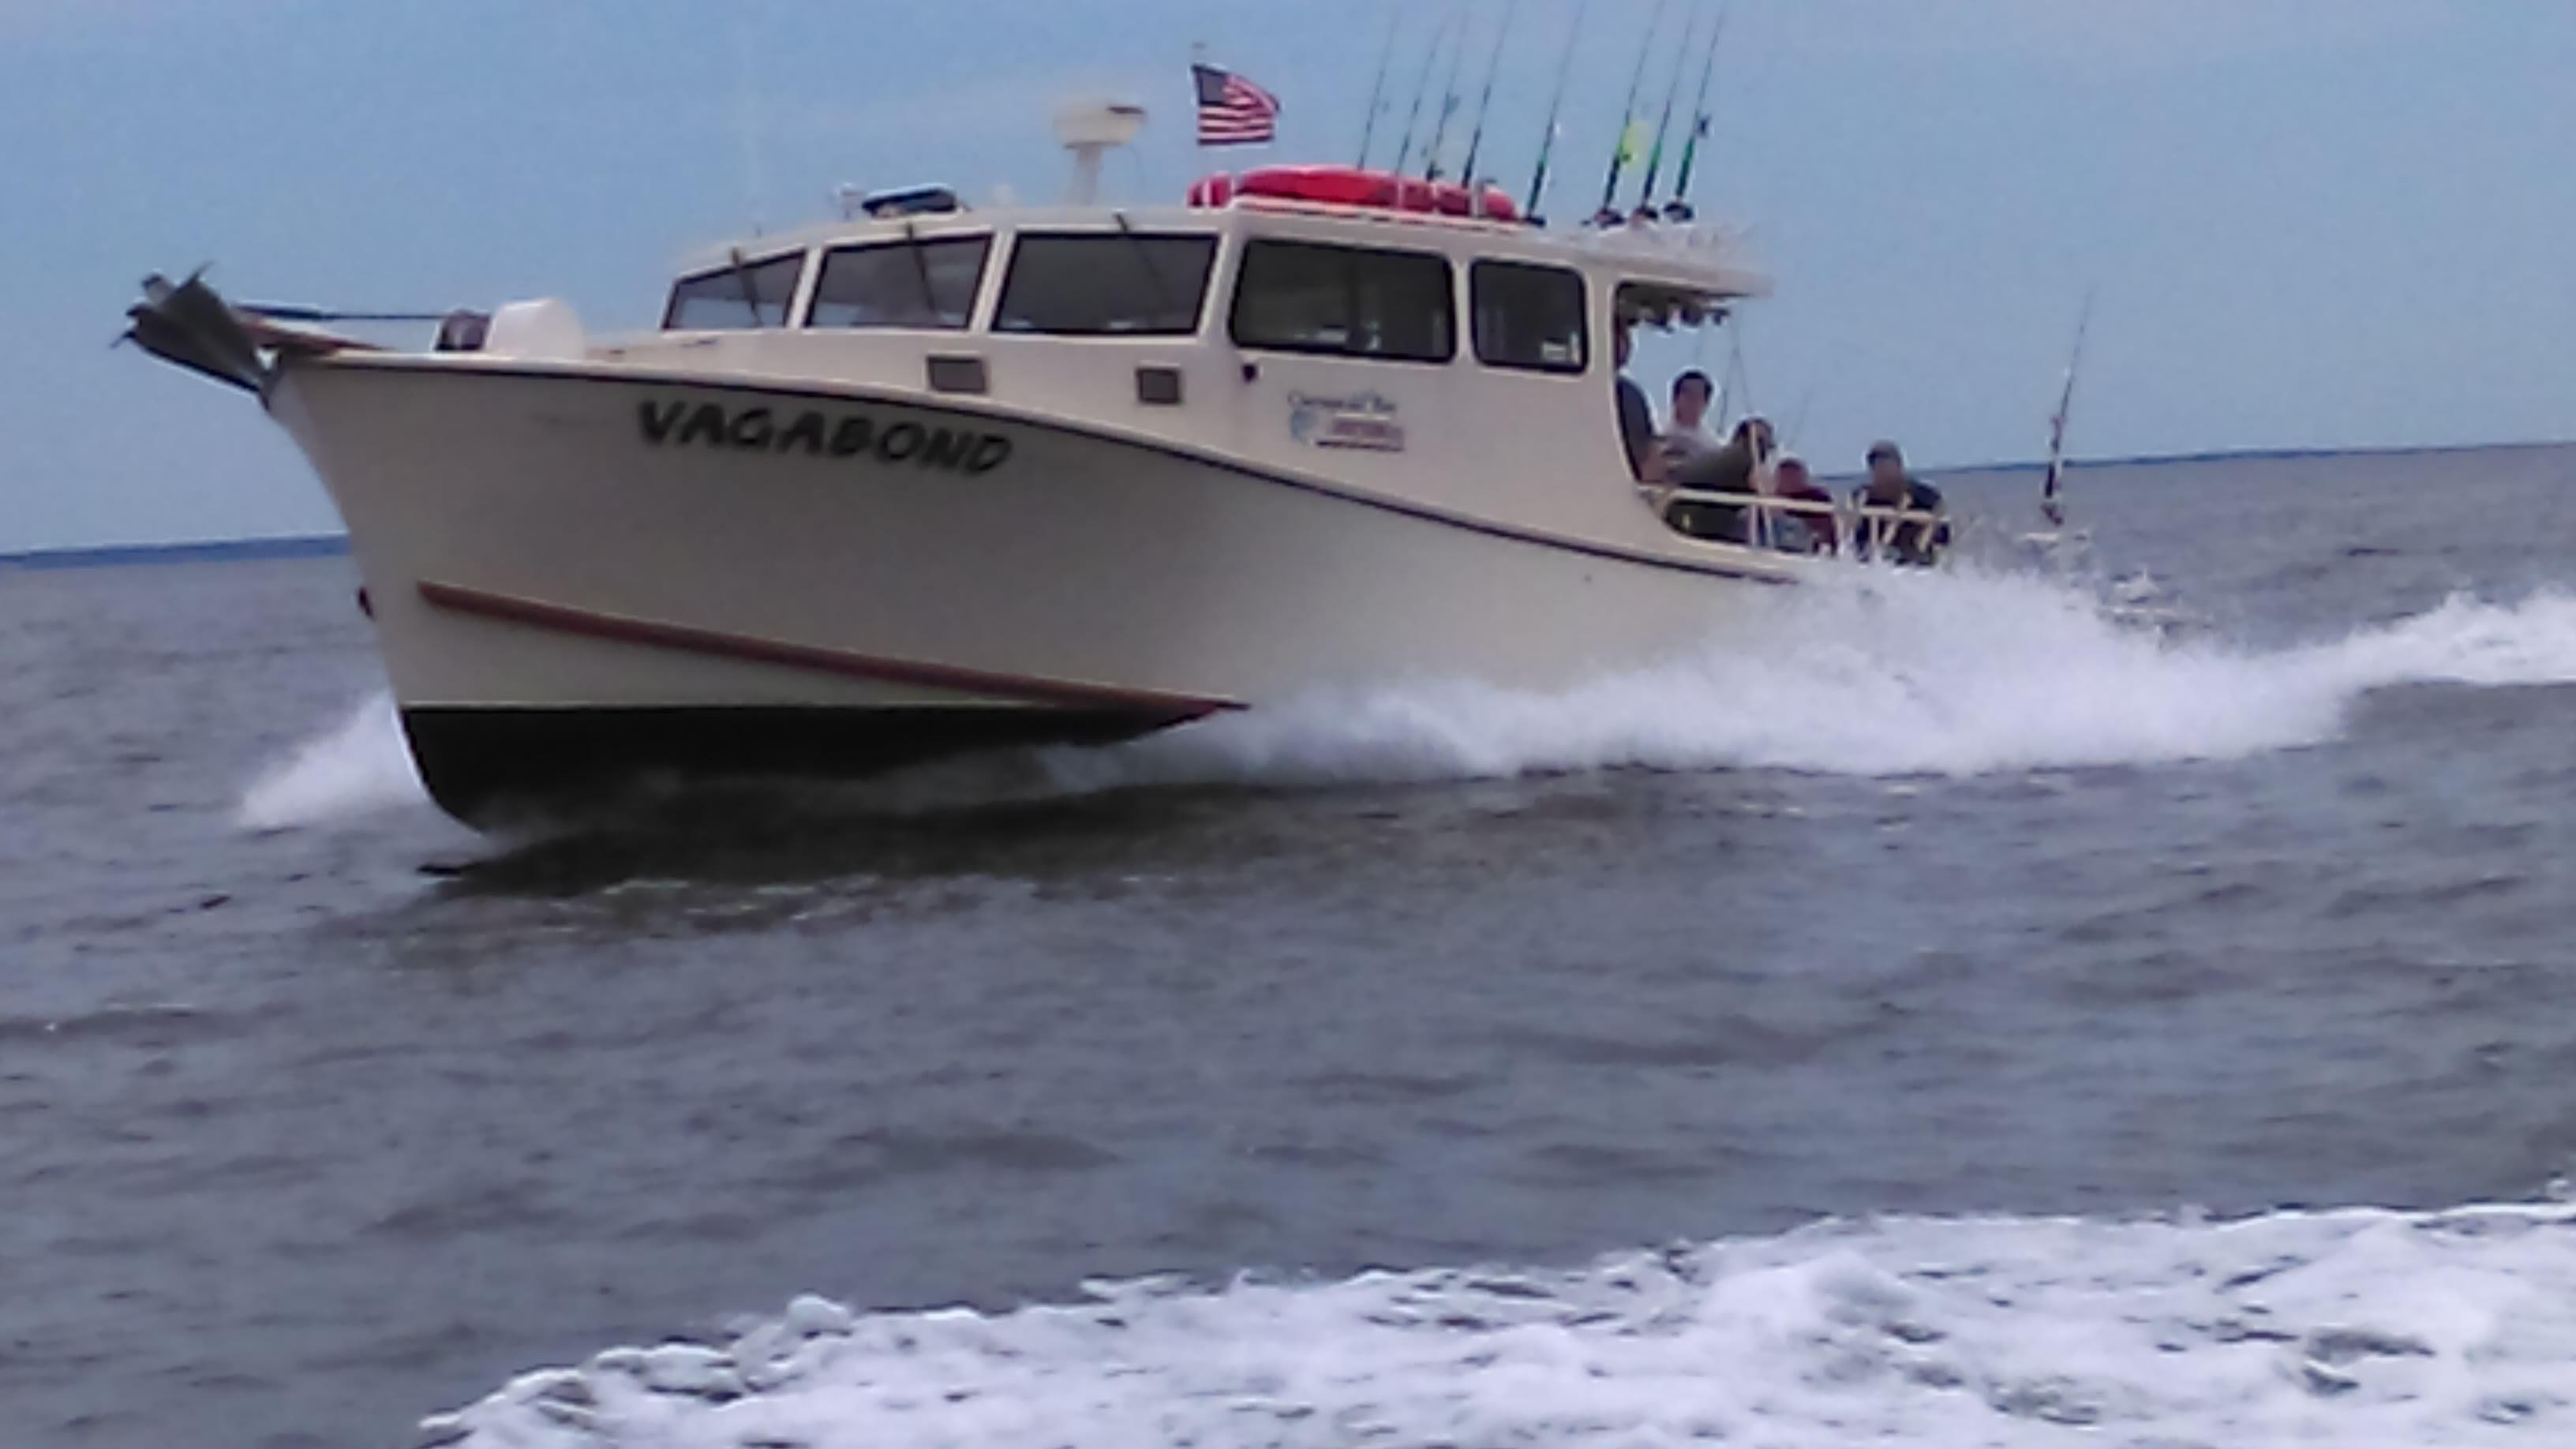 Chesapeake Bay Sport Fishing Charters: Vagabond